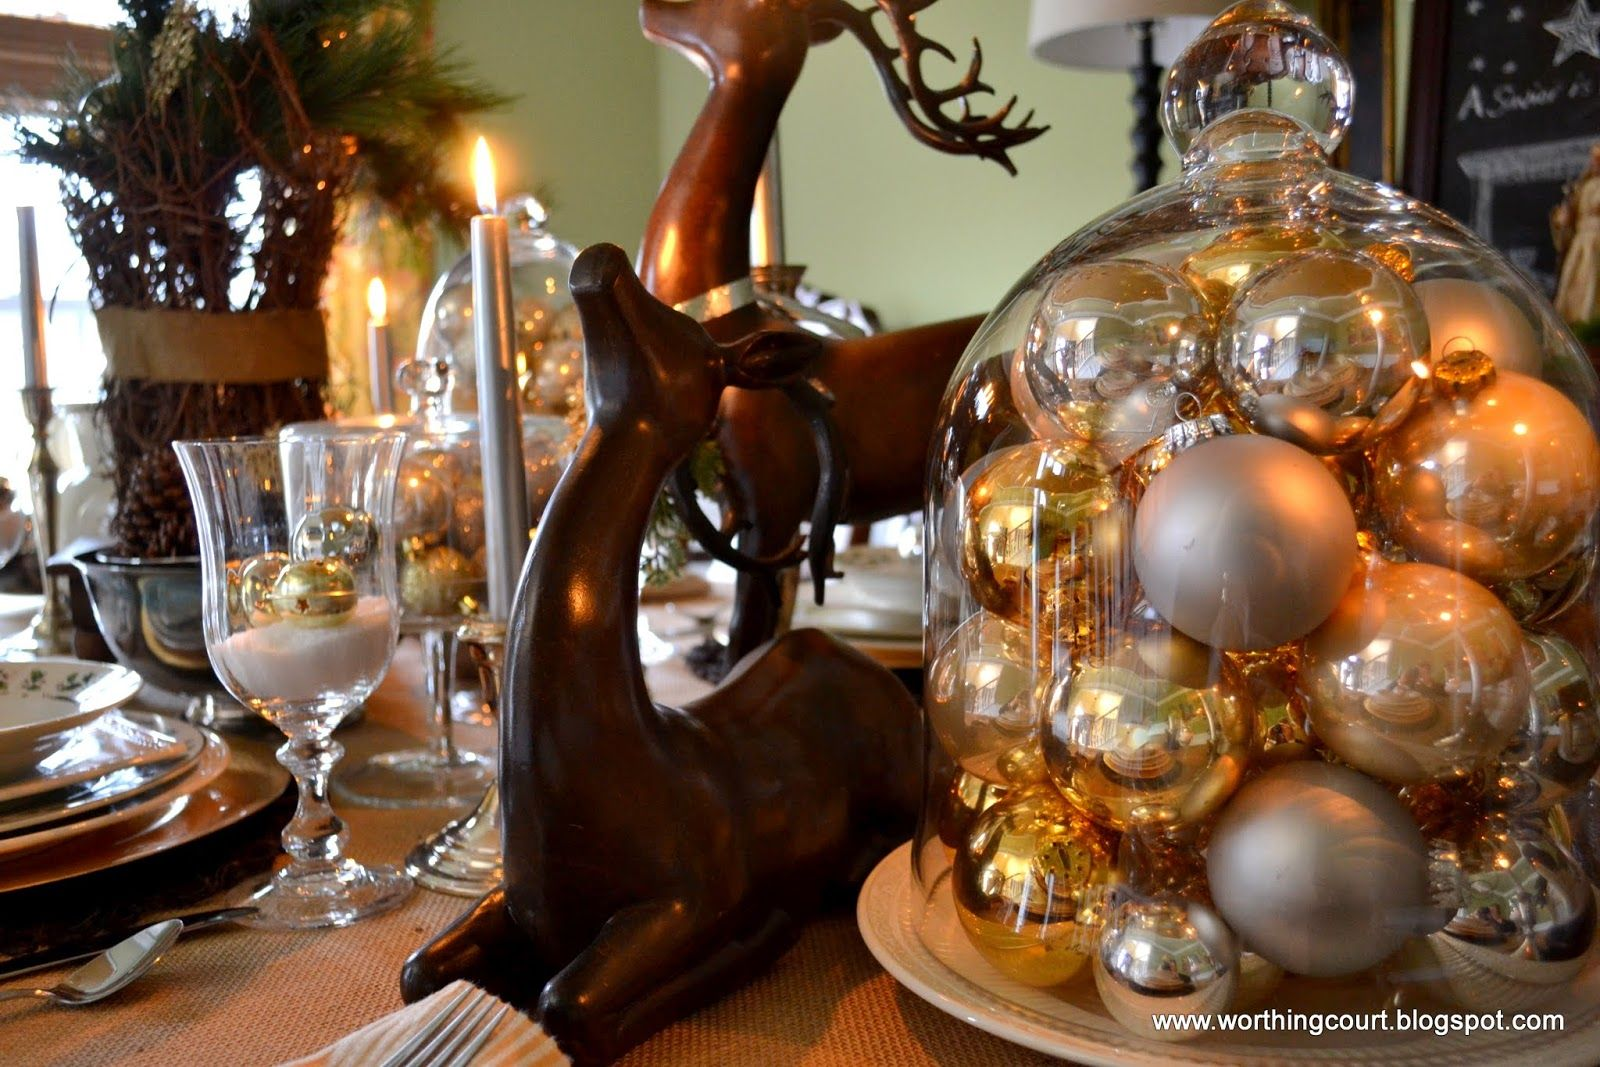 Rustic And Refined Christmas Dining Room Gold DecorationsChristmas Table CenterpiecesChristmas